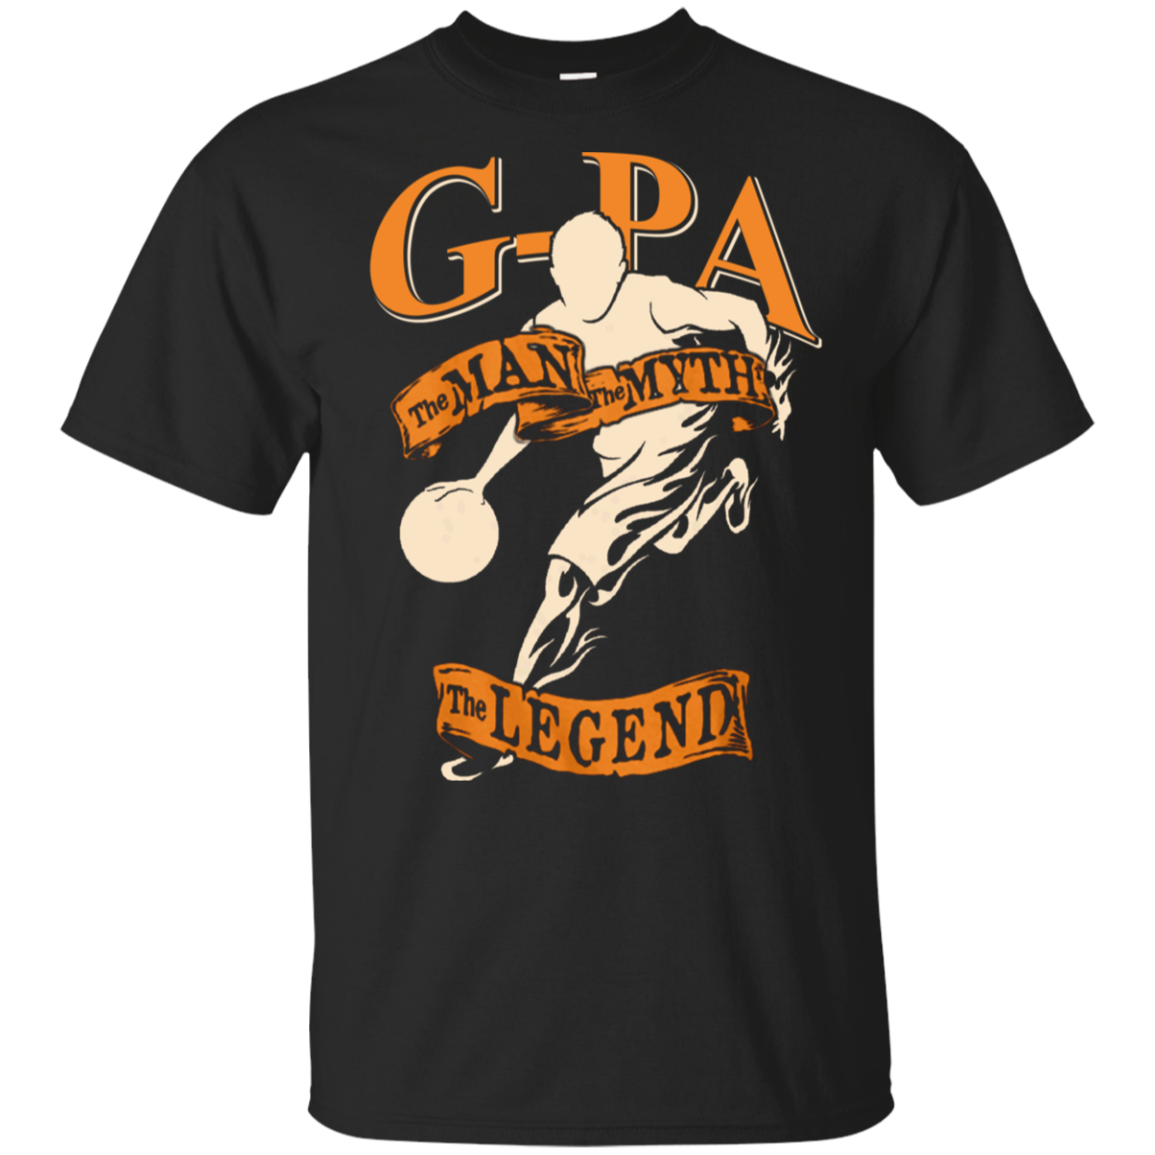 G-pa The man the myth the legend basketball Ultra Cotton T-Shirt